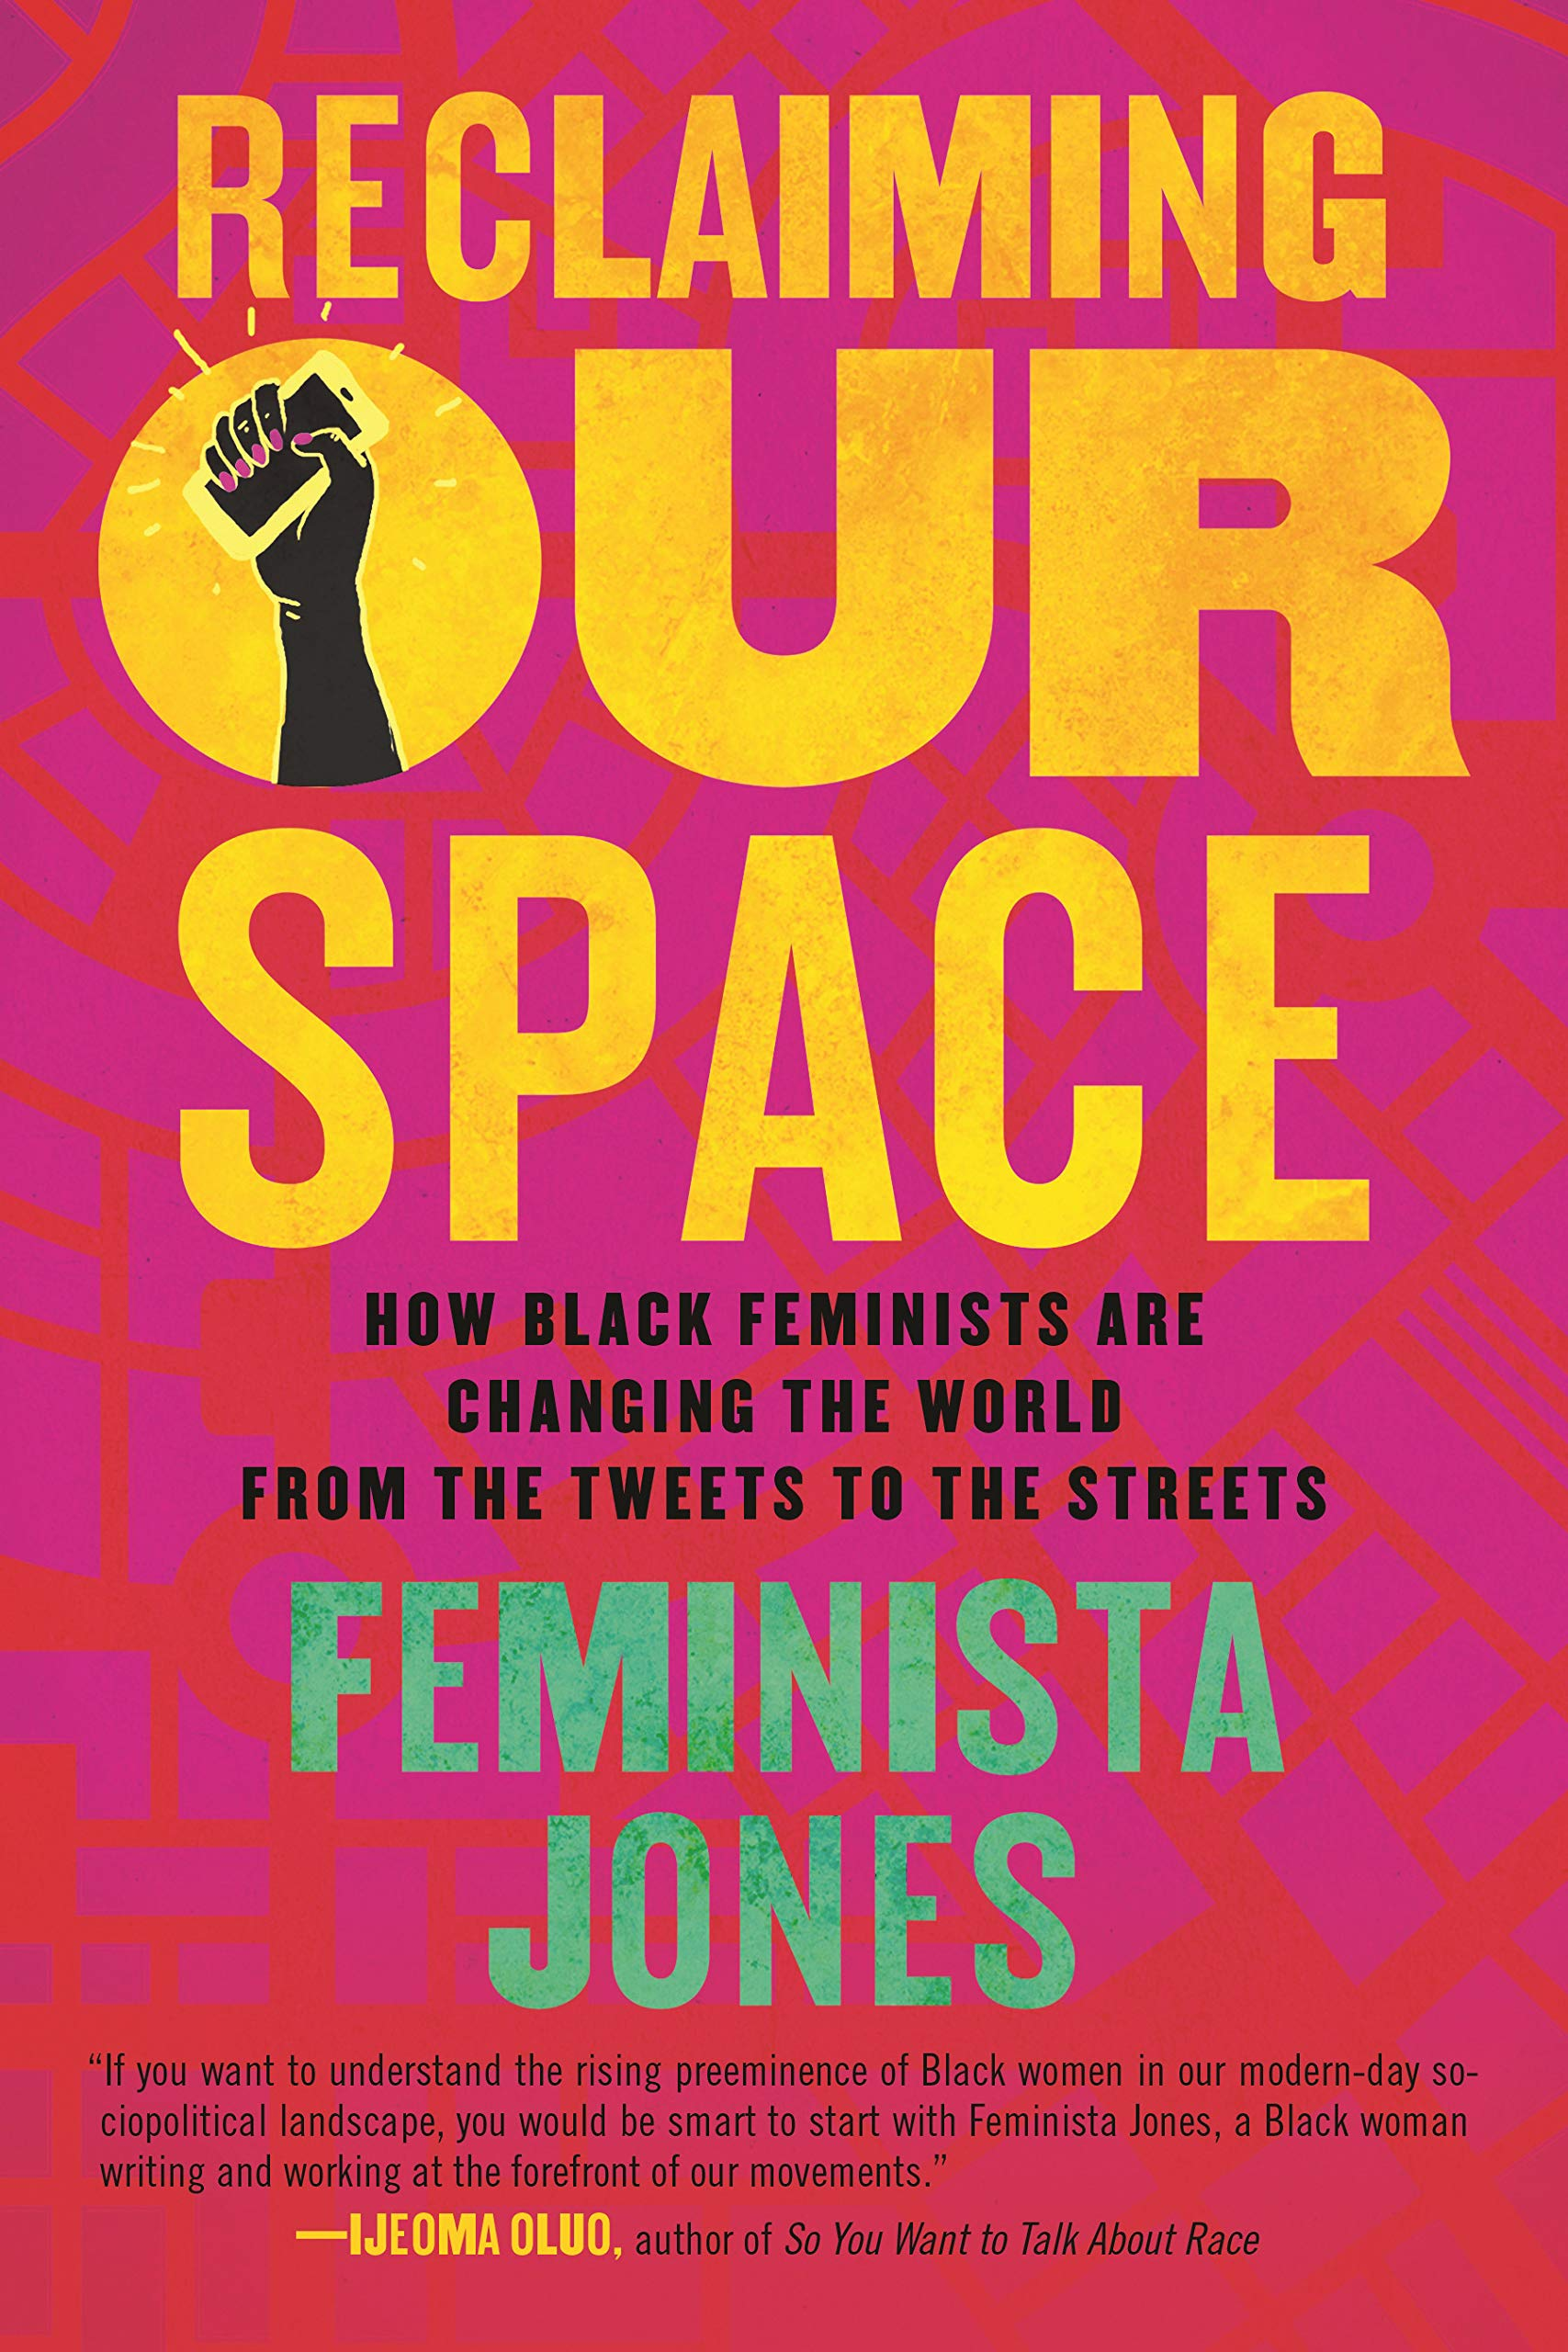 Reclaiming Our Space by Feminista Jones